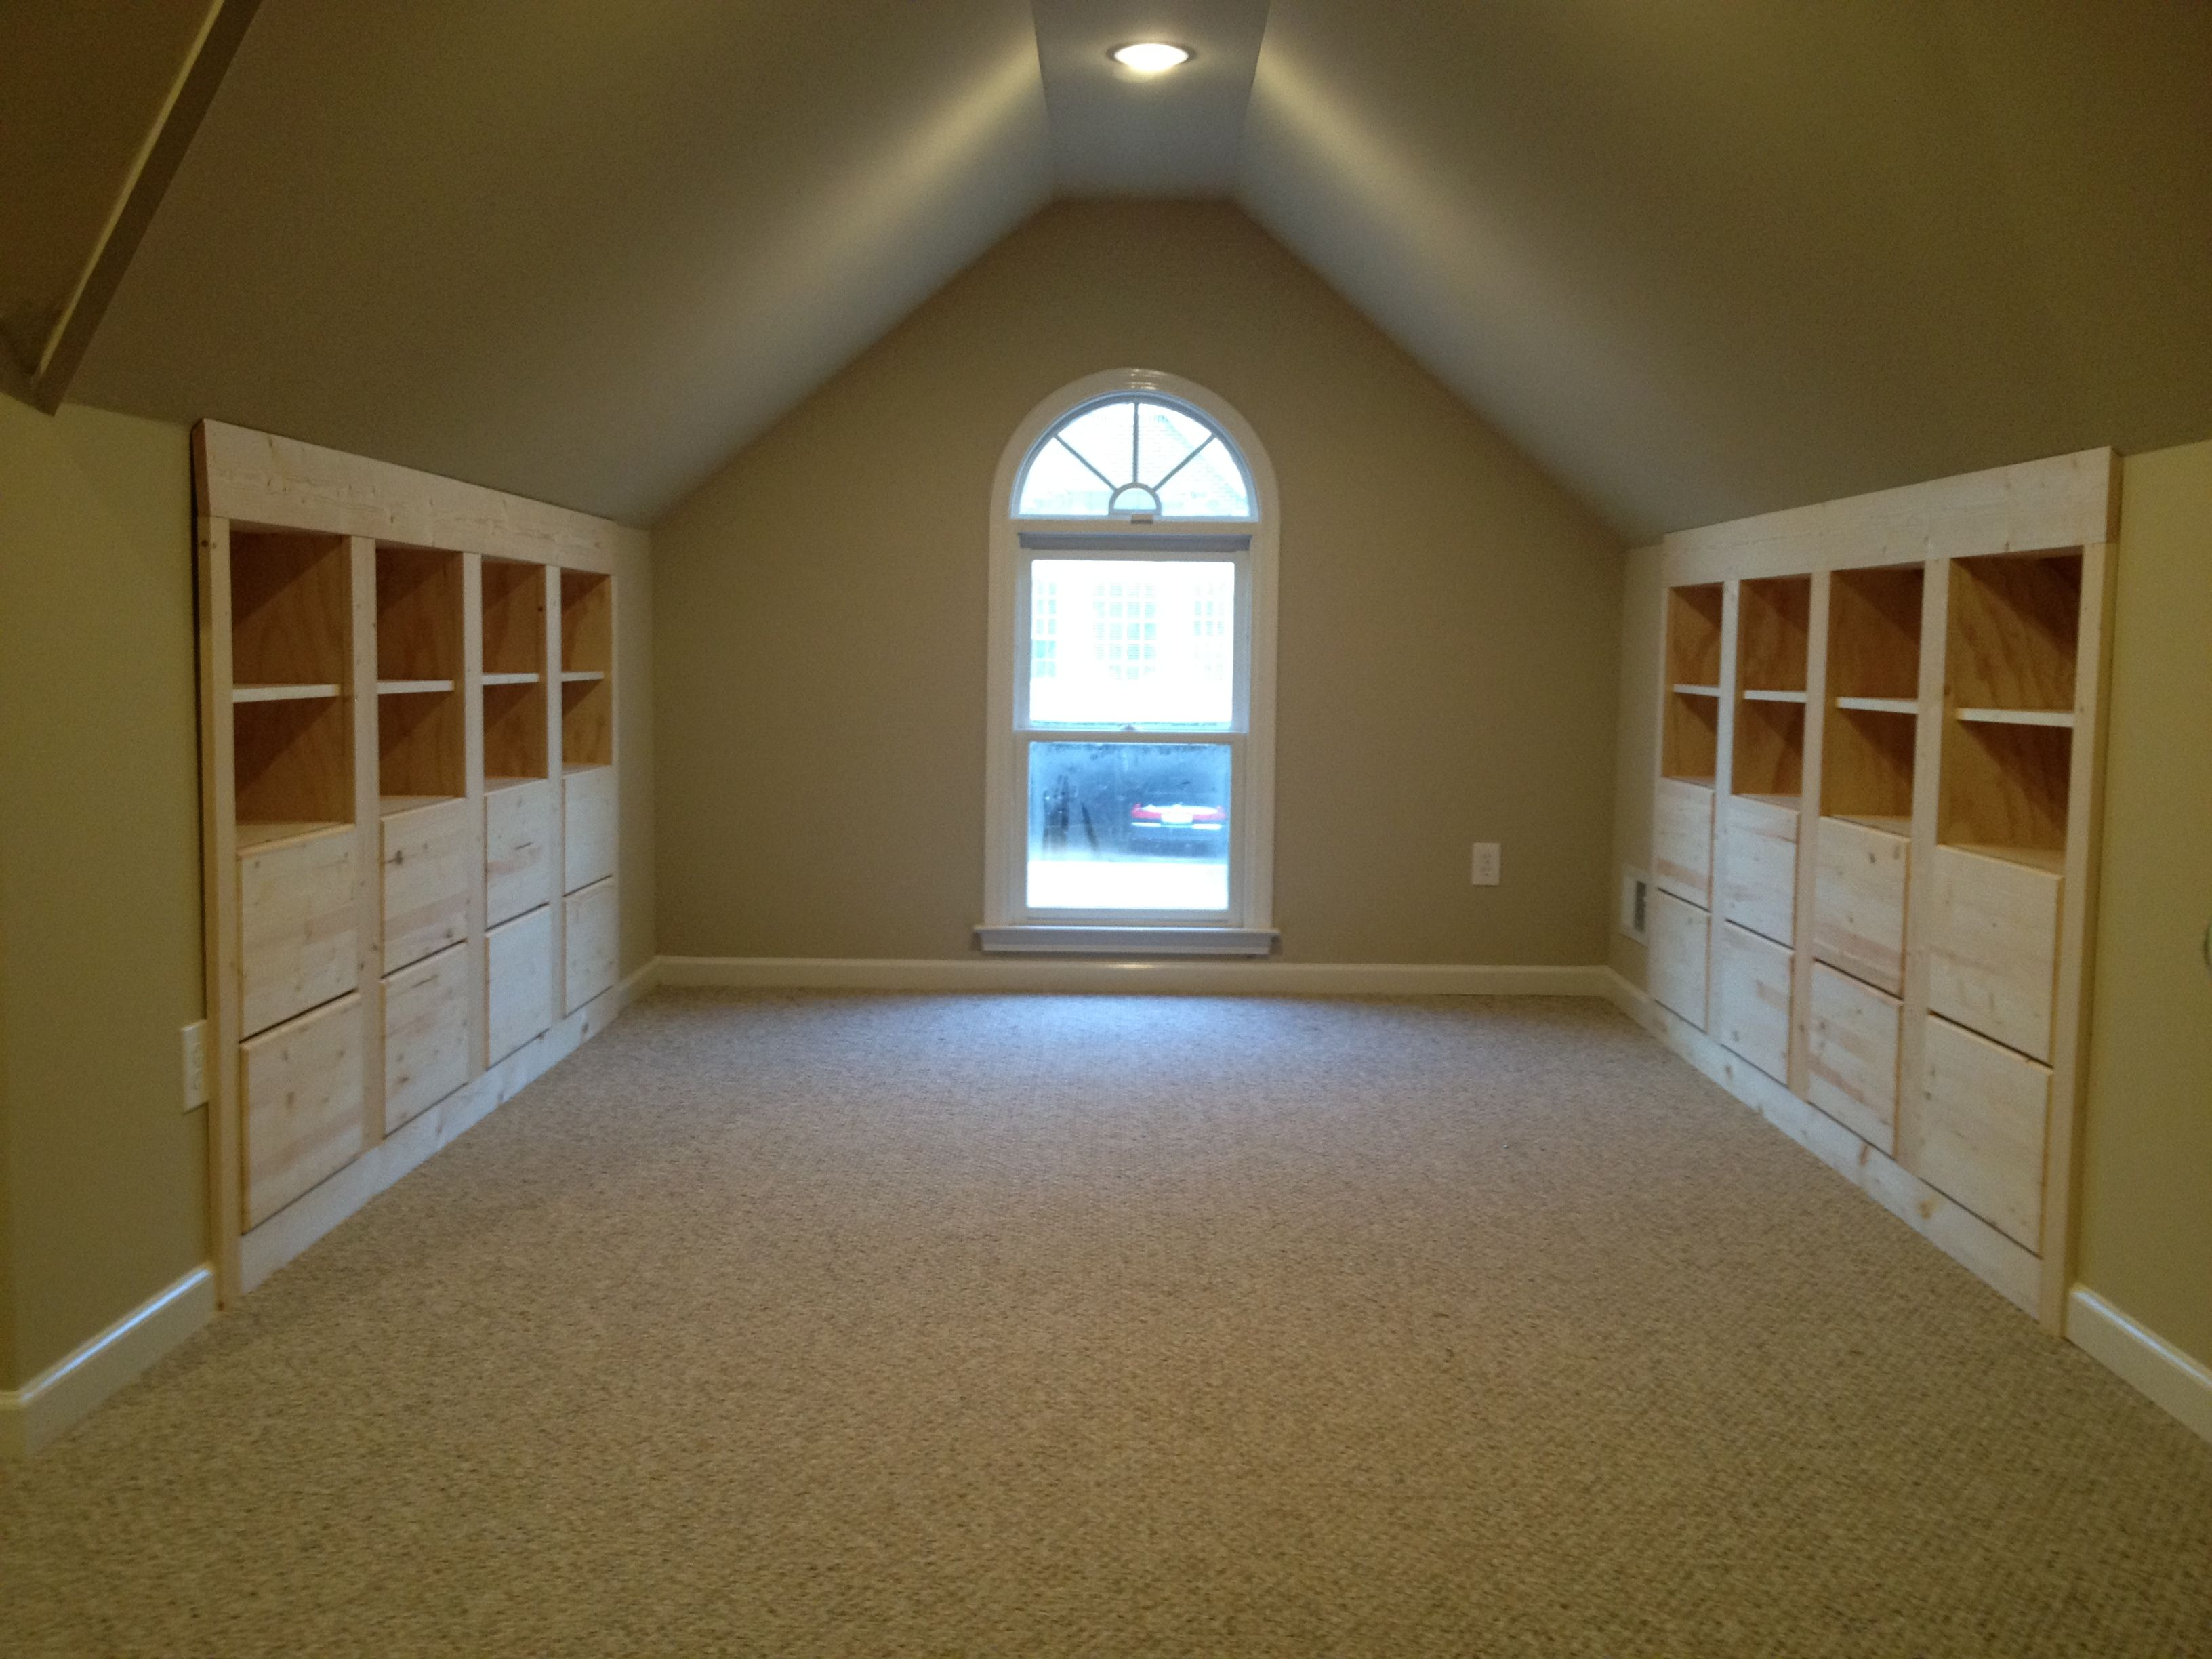 Attic Space Ideas Attic Bedroom Closet Design Pictures Remodel Decor And